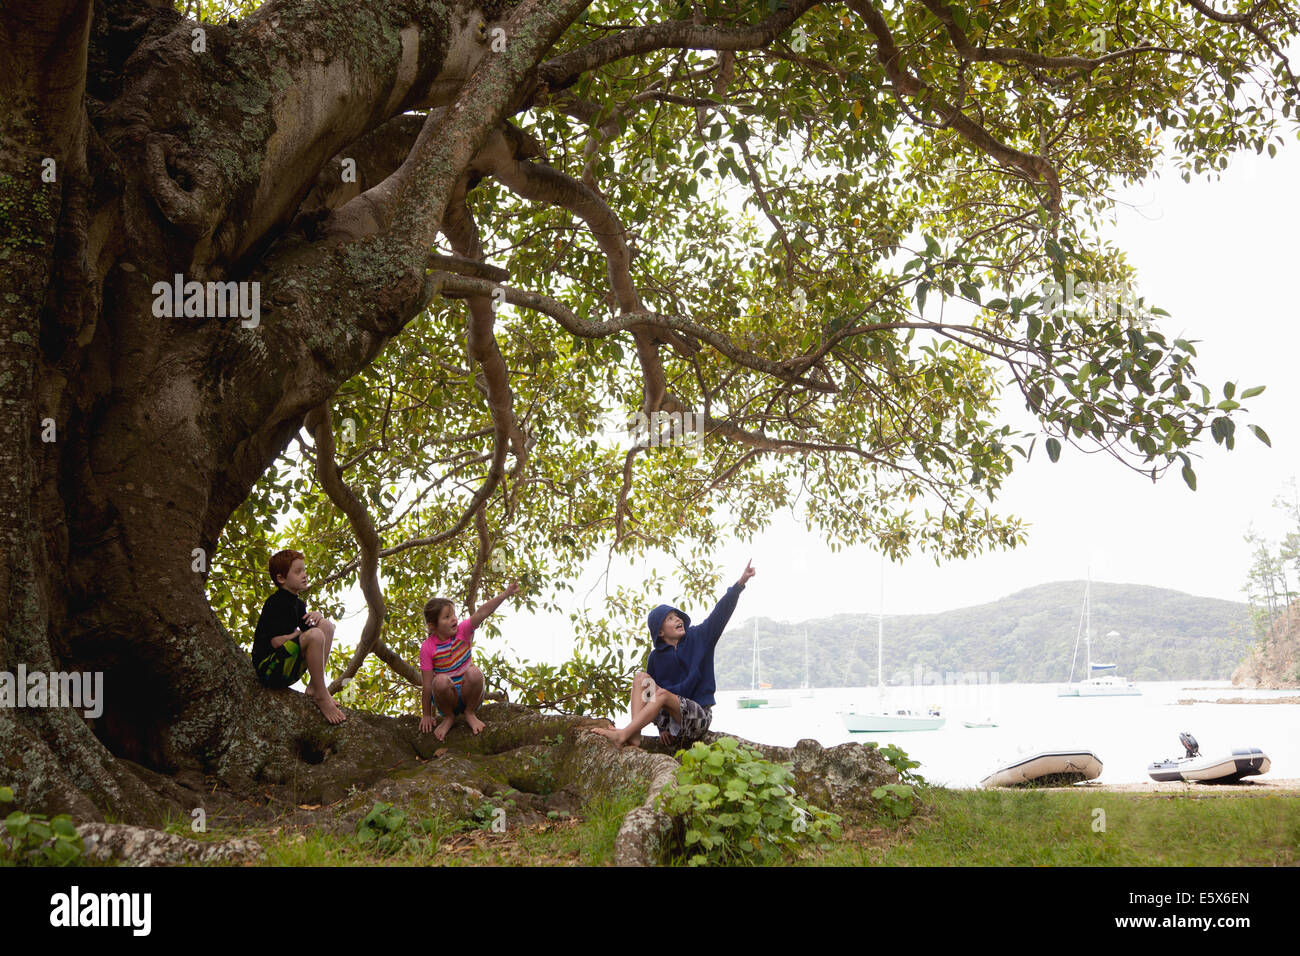 Three boys sitting under tree - Stock Image